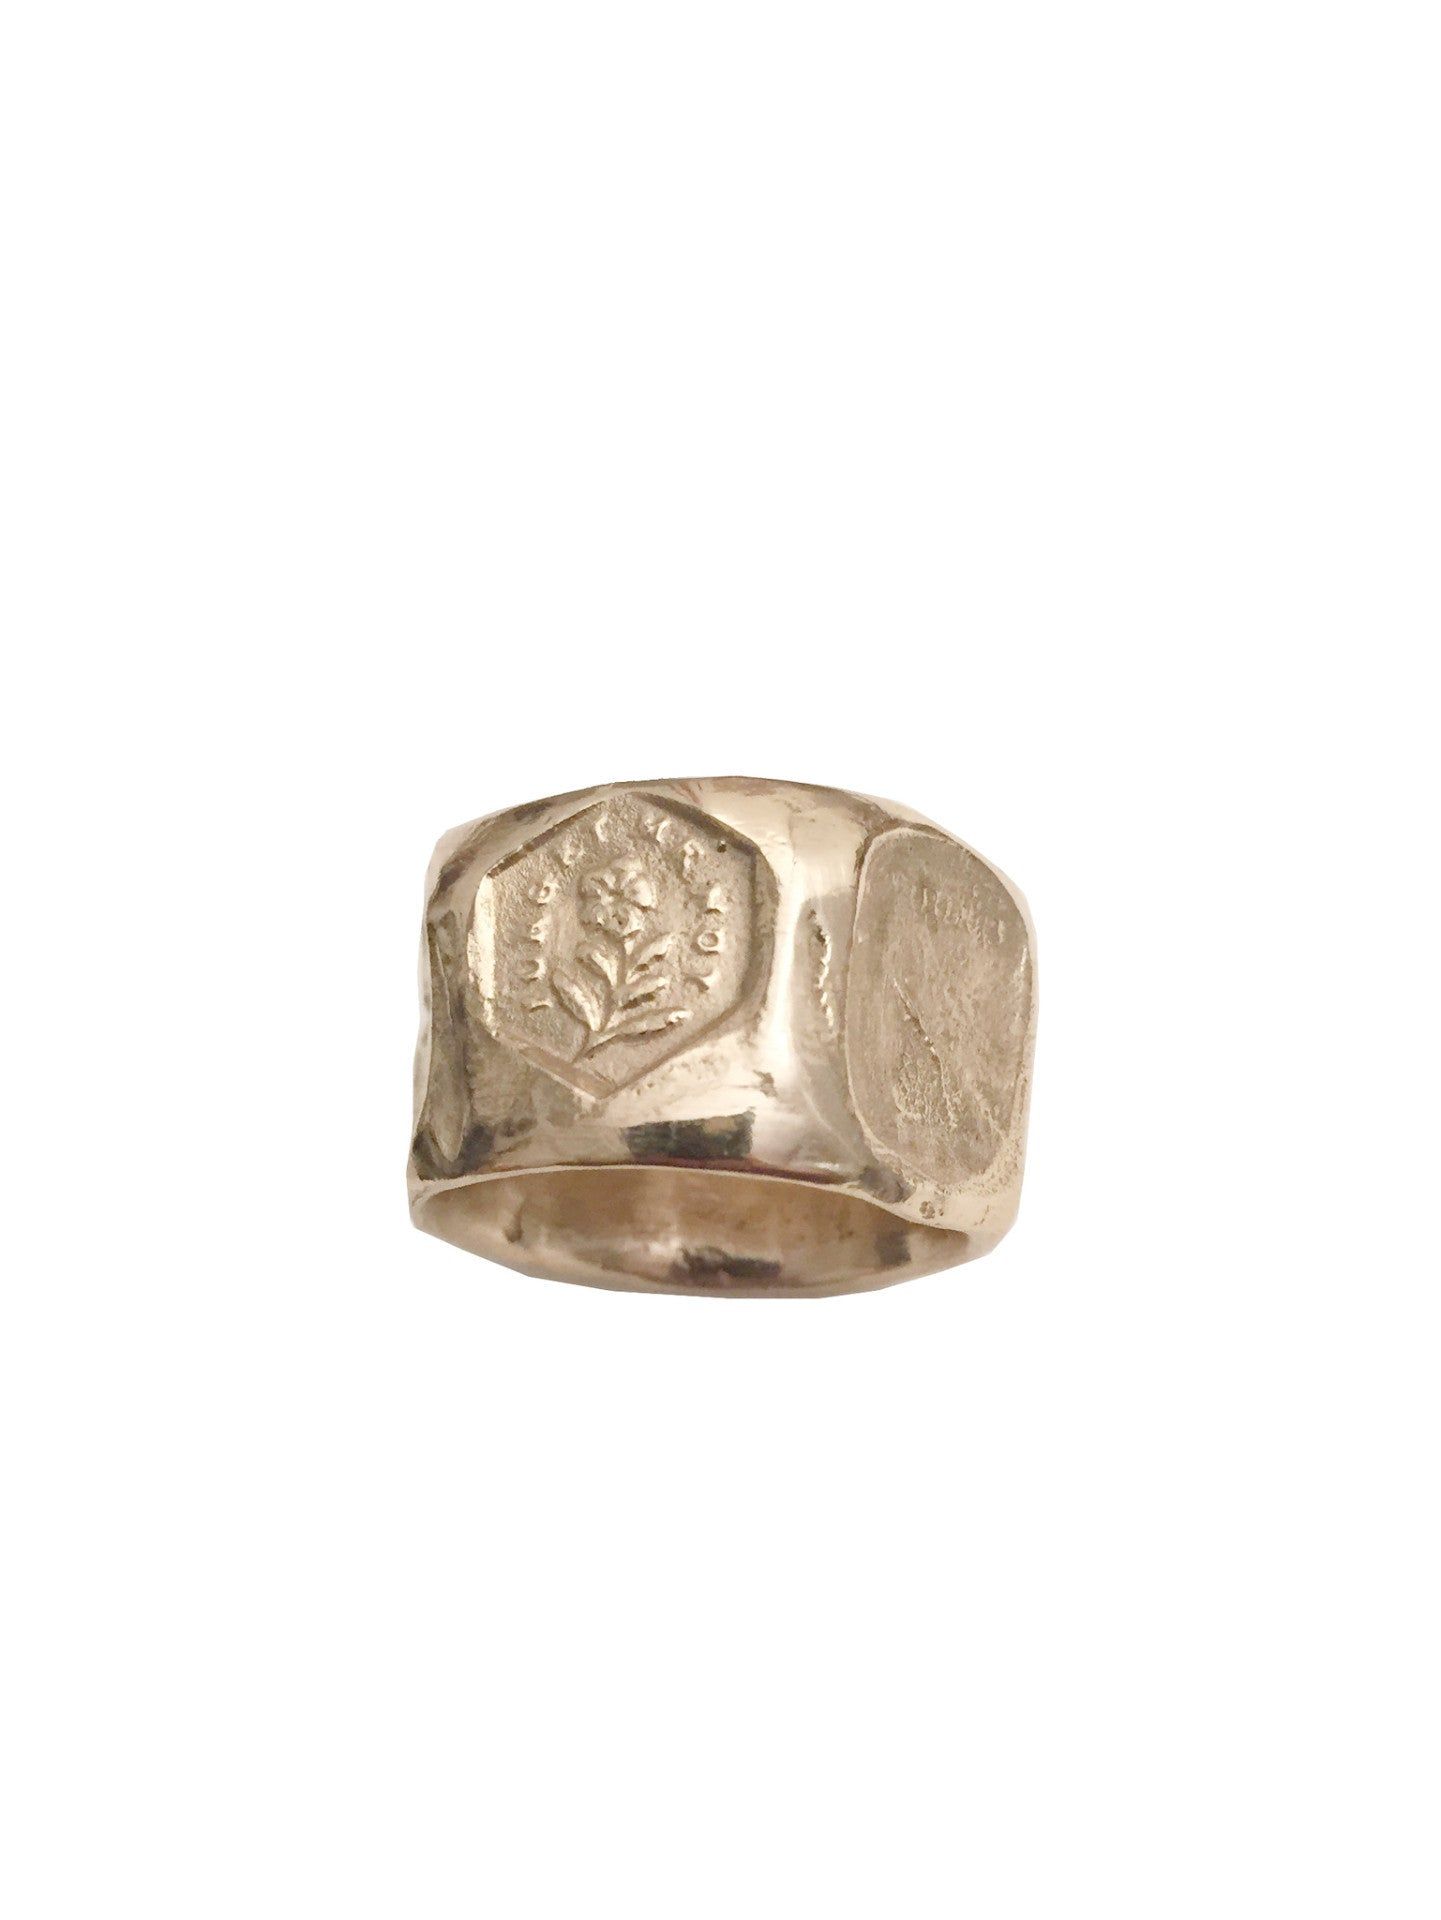 faceted intaglio ring